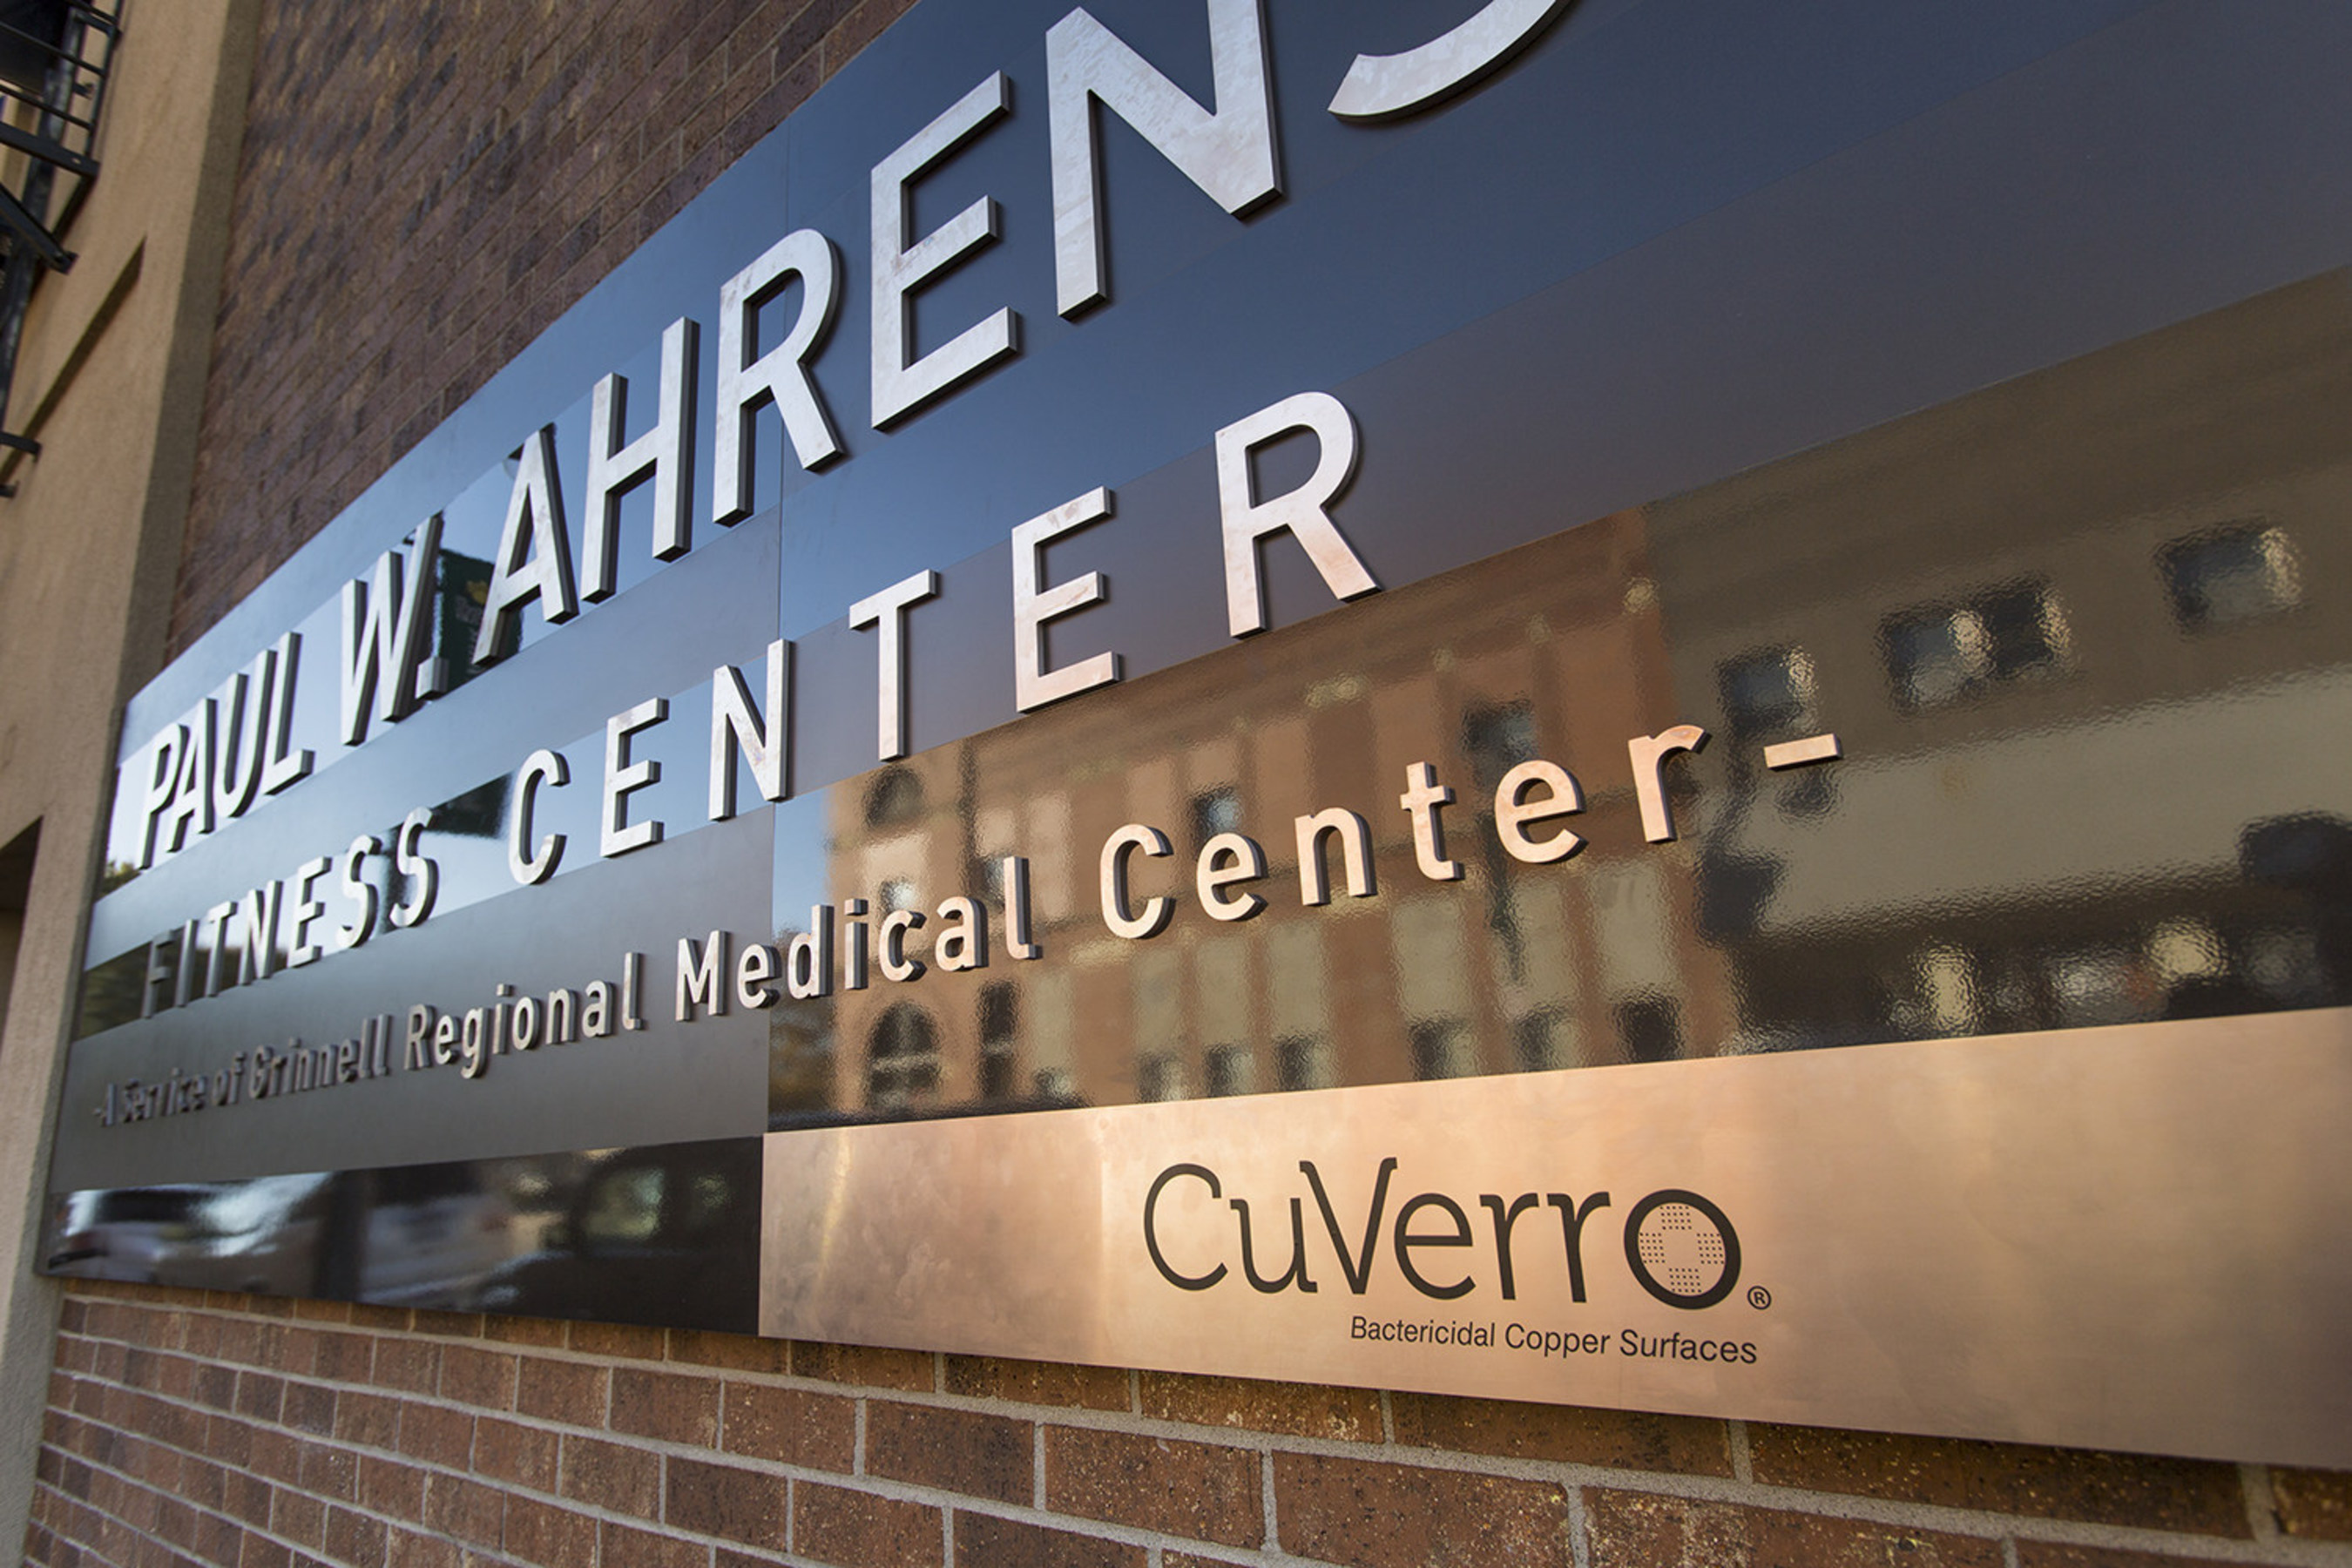 Paul W. Ahrens Fitness Center partners with CuVerro bactericidal fitness and facility products to create a ...